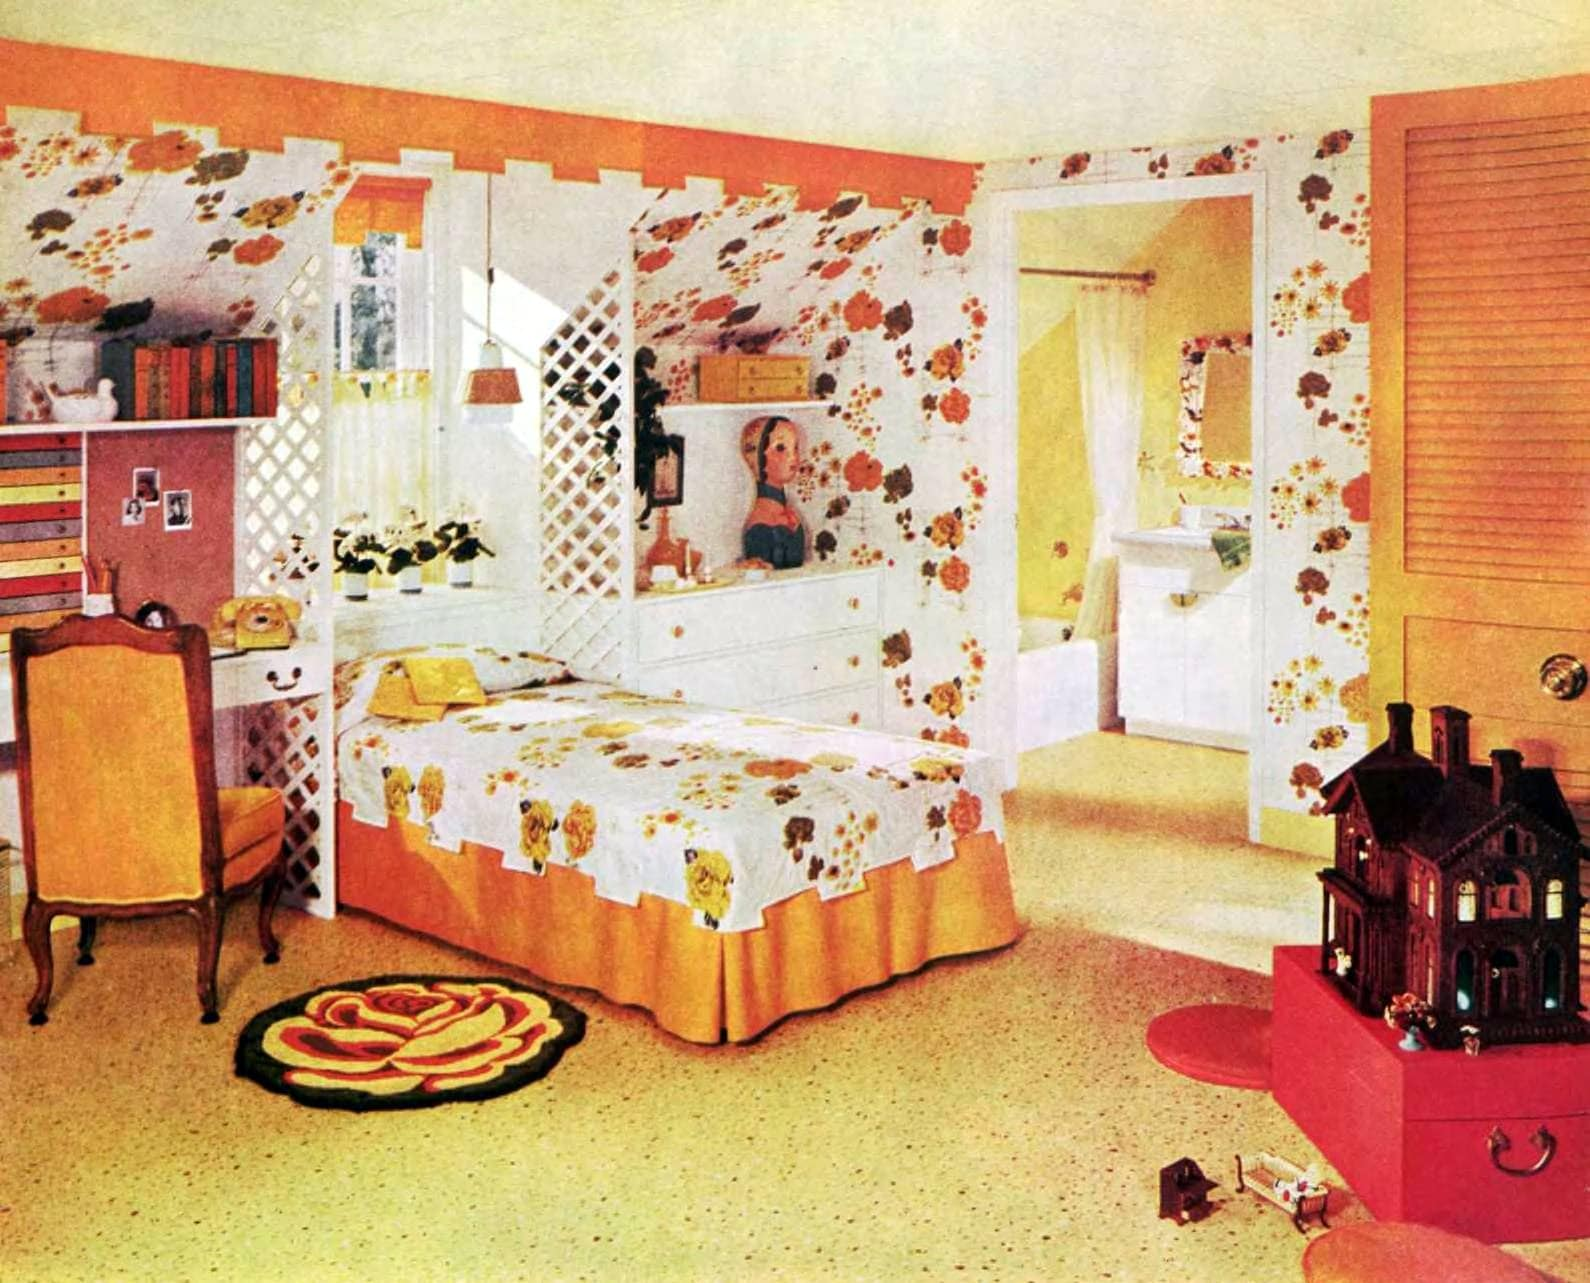 Orange and yellow child's bedroom - Colorful vintage 1950s home decor